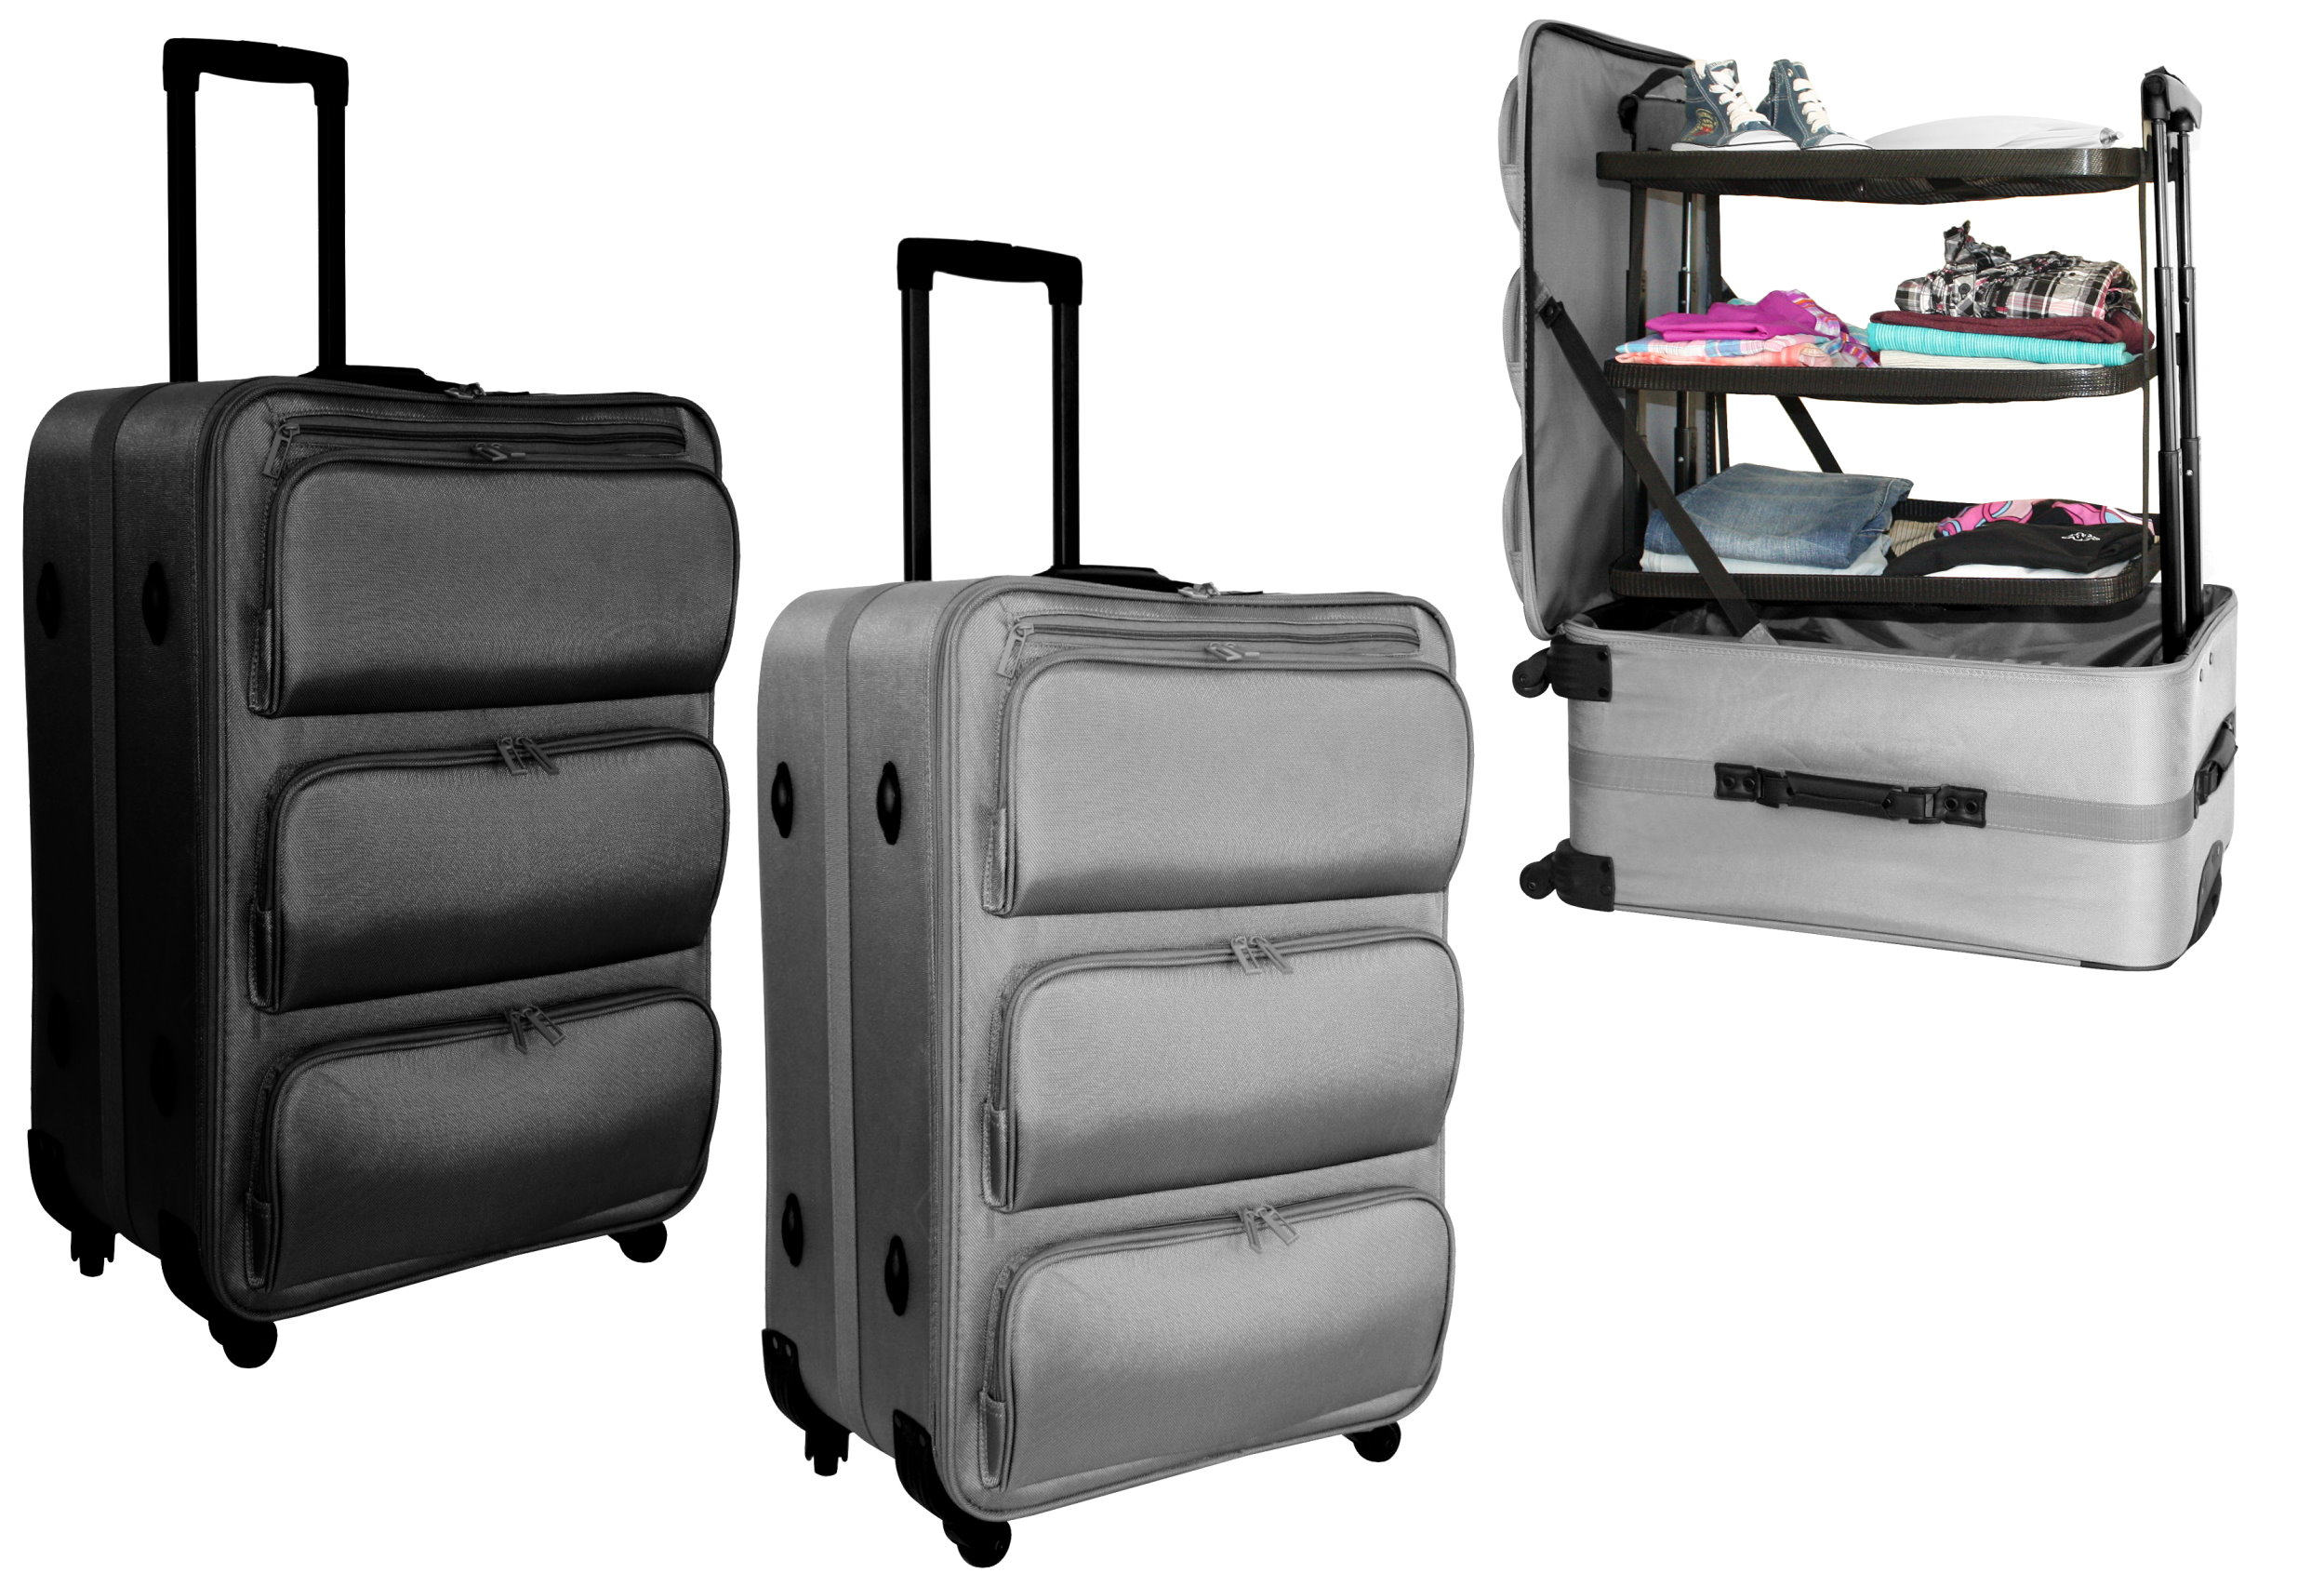 xl koffer 60l trolley reisekoffer 71cm reise gep ck regalsystem herausnehmbar ebay. Black Bedroom Furniture Sets. Home Design Ideas